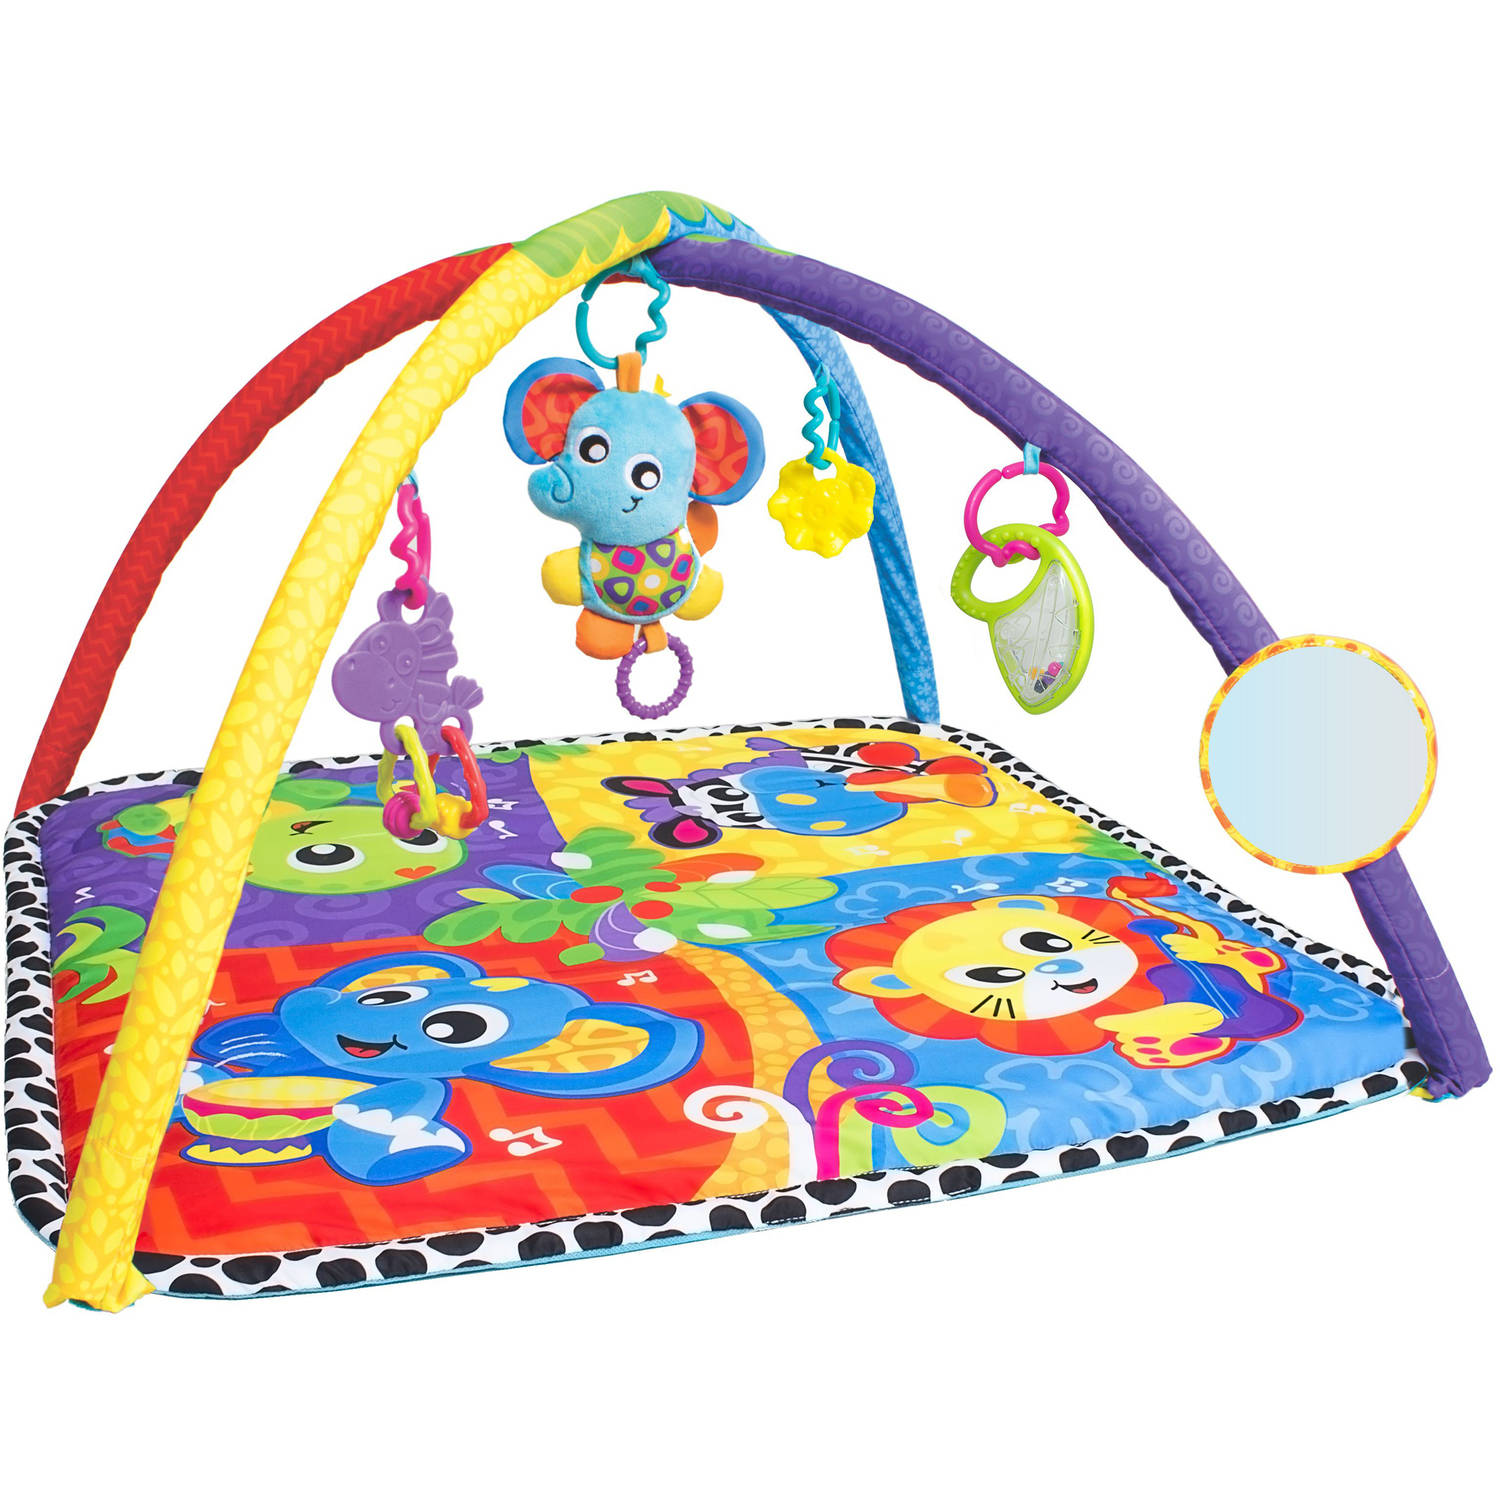 Playgro Music in the Jungle Activity Gym for Baby/Infant/Toddler